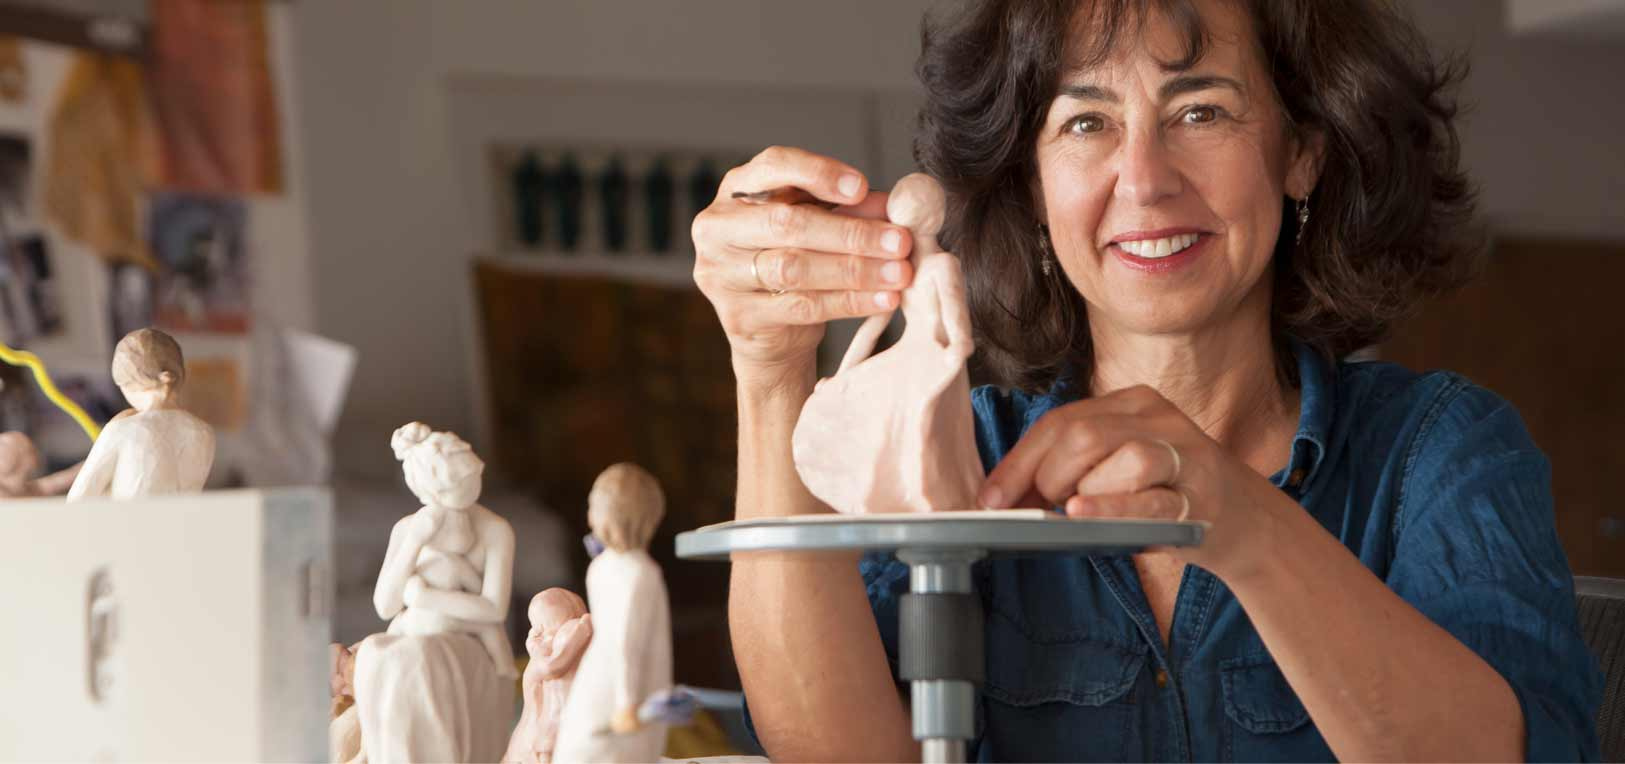 Susan Lordi sculpting a figurine in her art studio